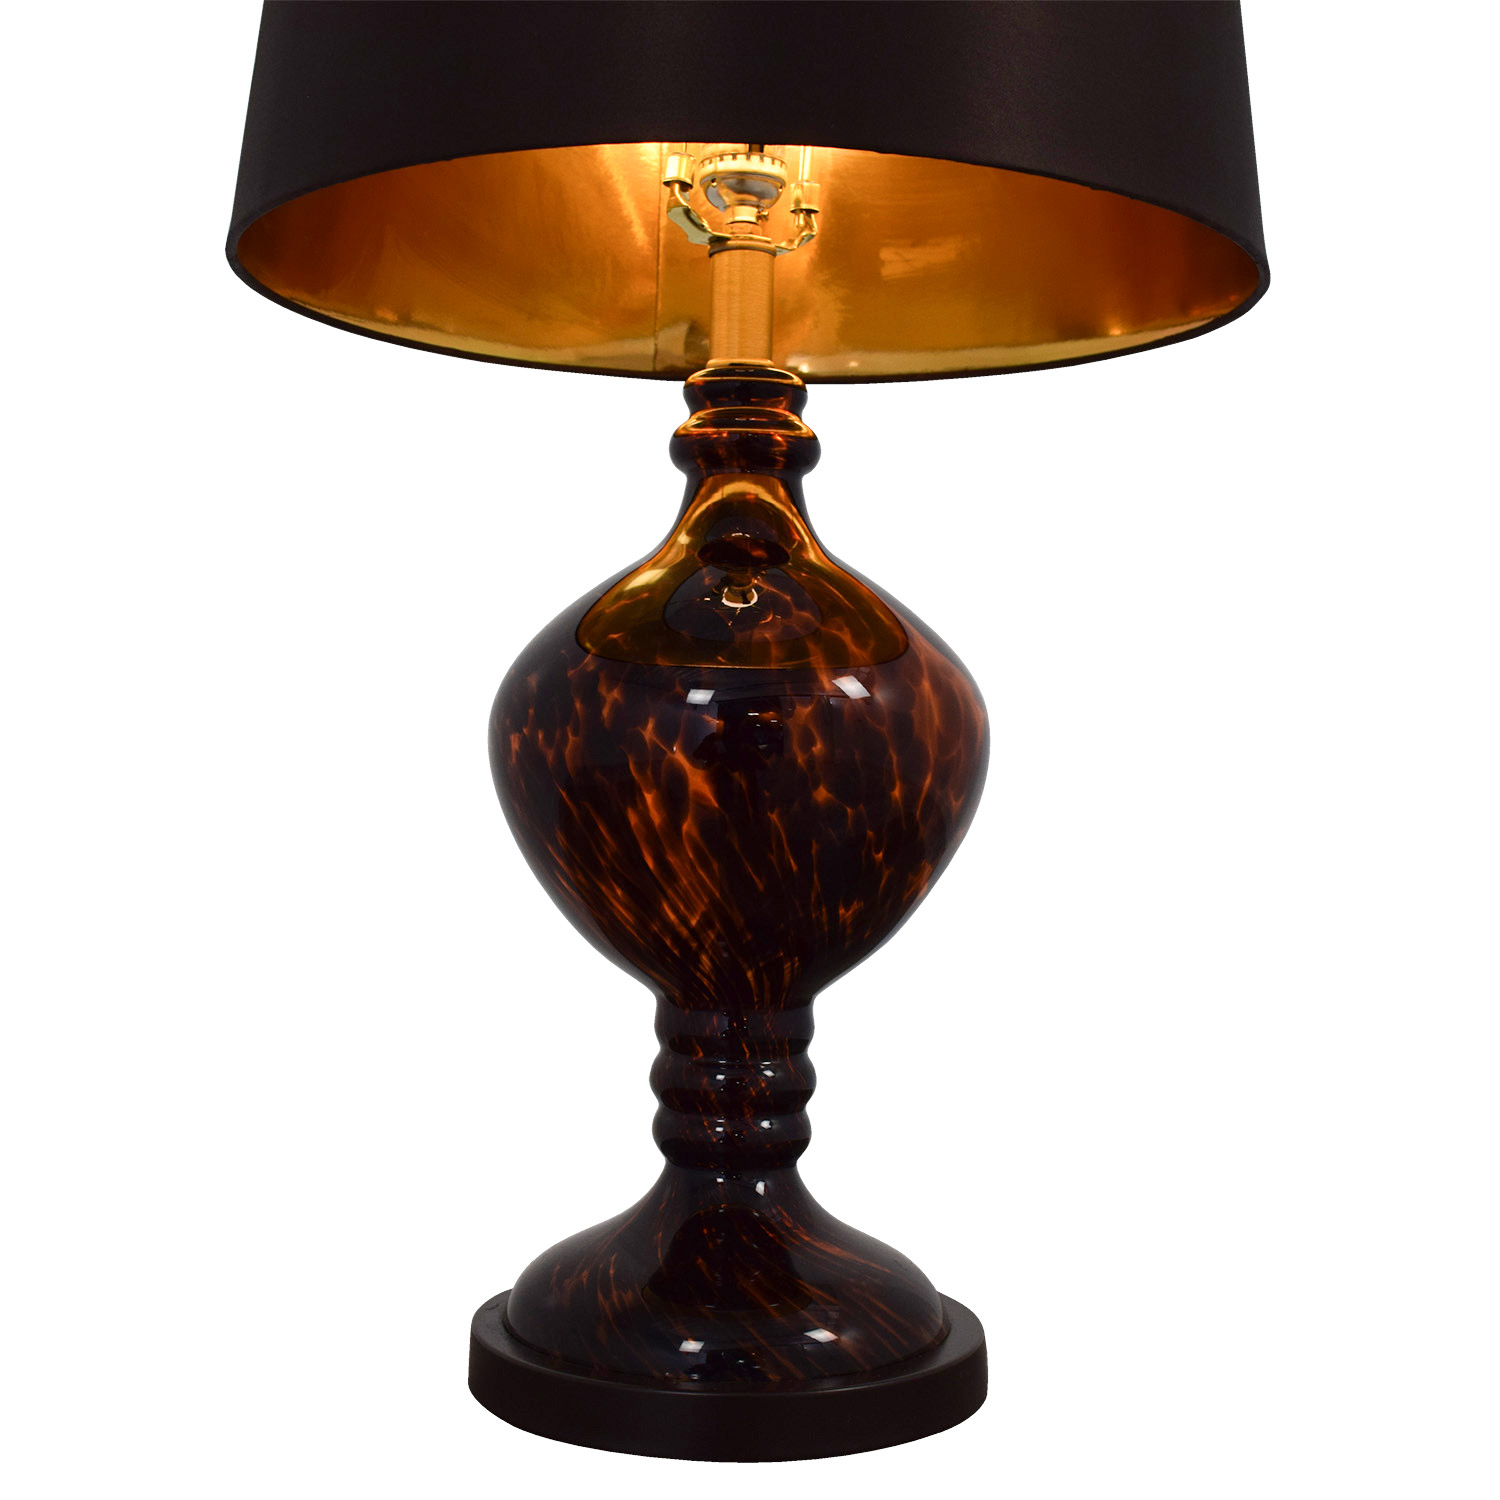 82 Off Pier 1 Imports Pier 1 Imports Amber Table Lamp